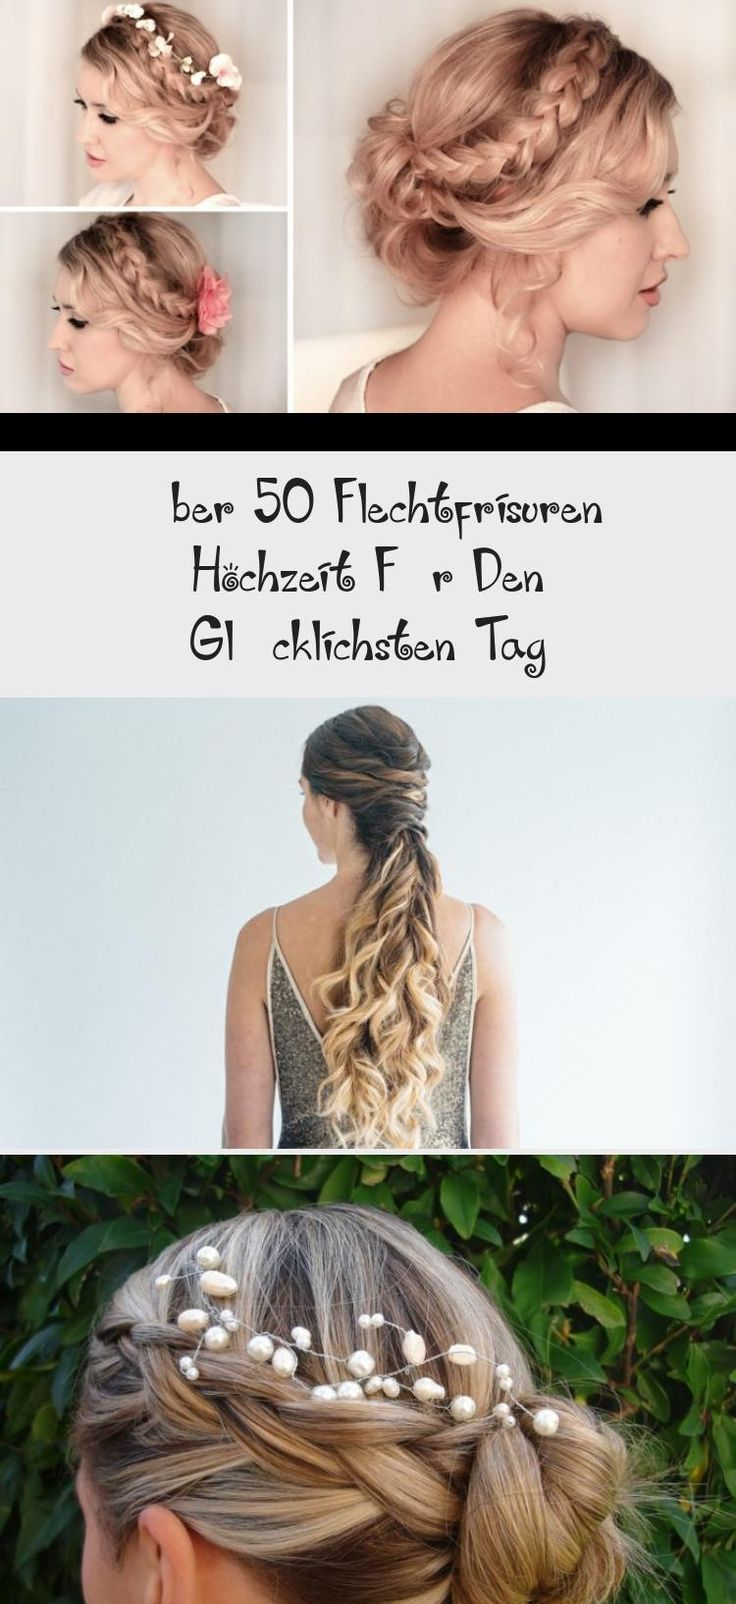 Over 50 Braided Wedding For the Happiest Day